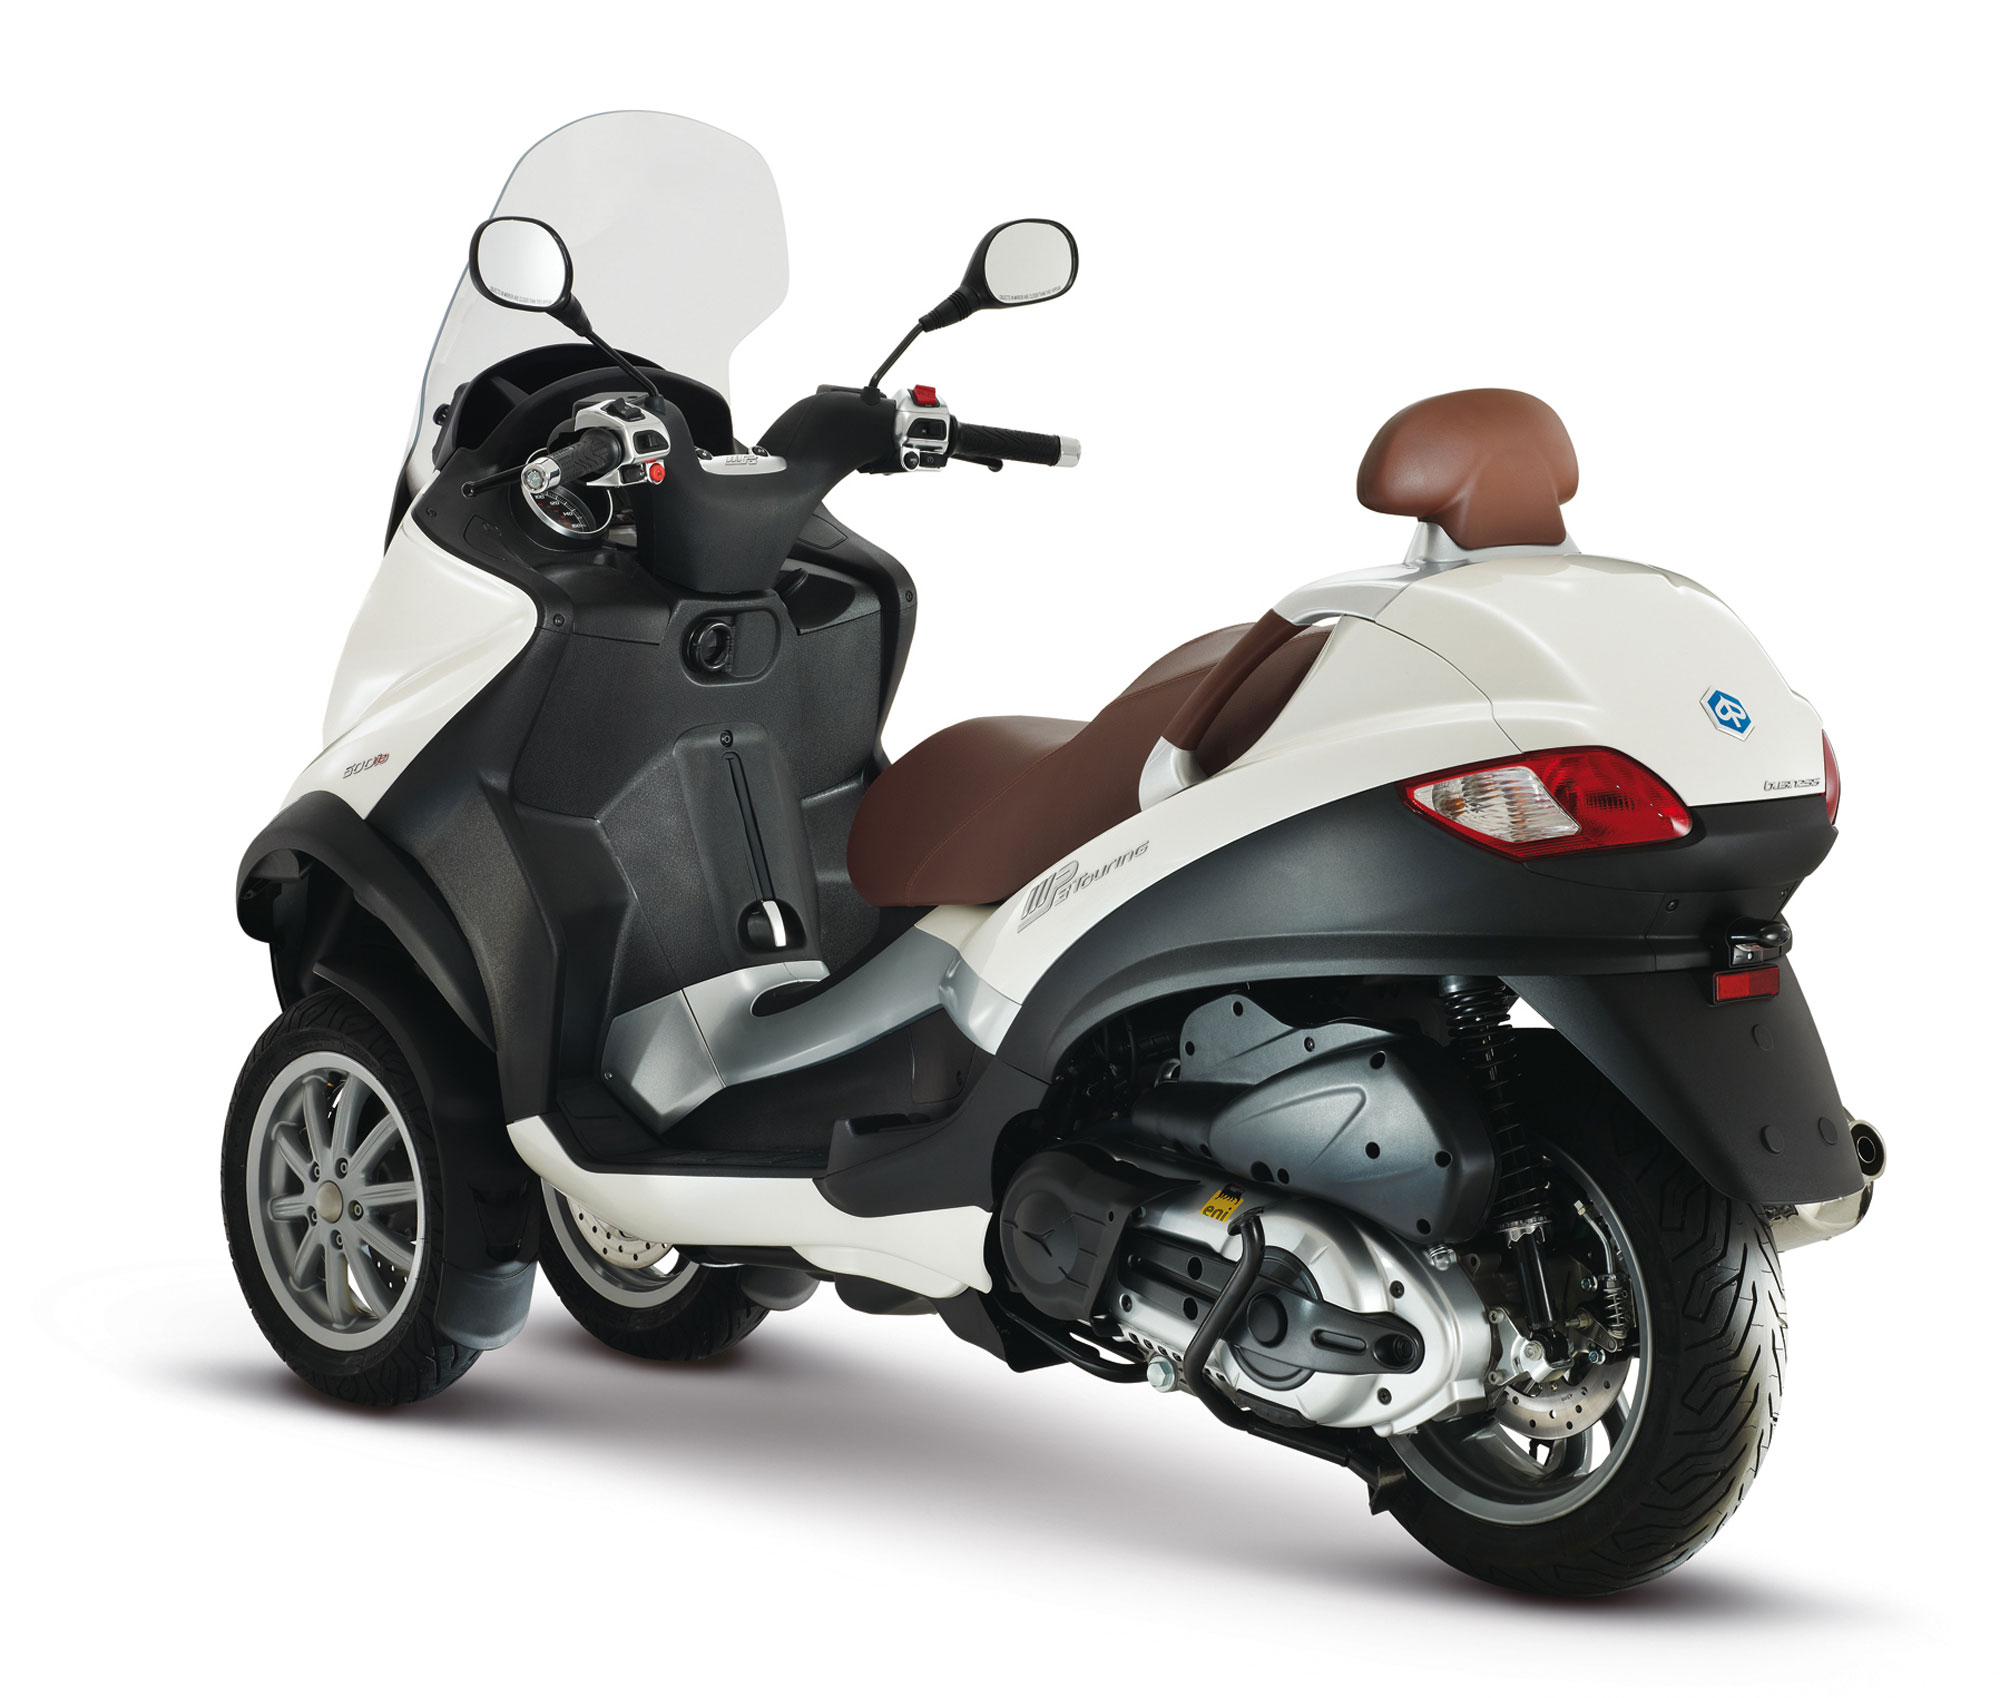 Piaggio MP3 Touring 125 2012 images #120340